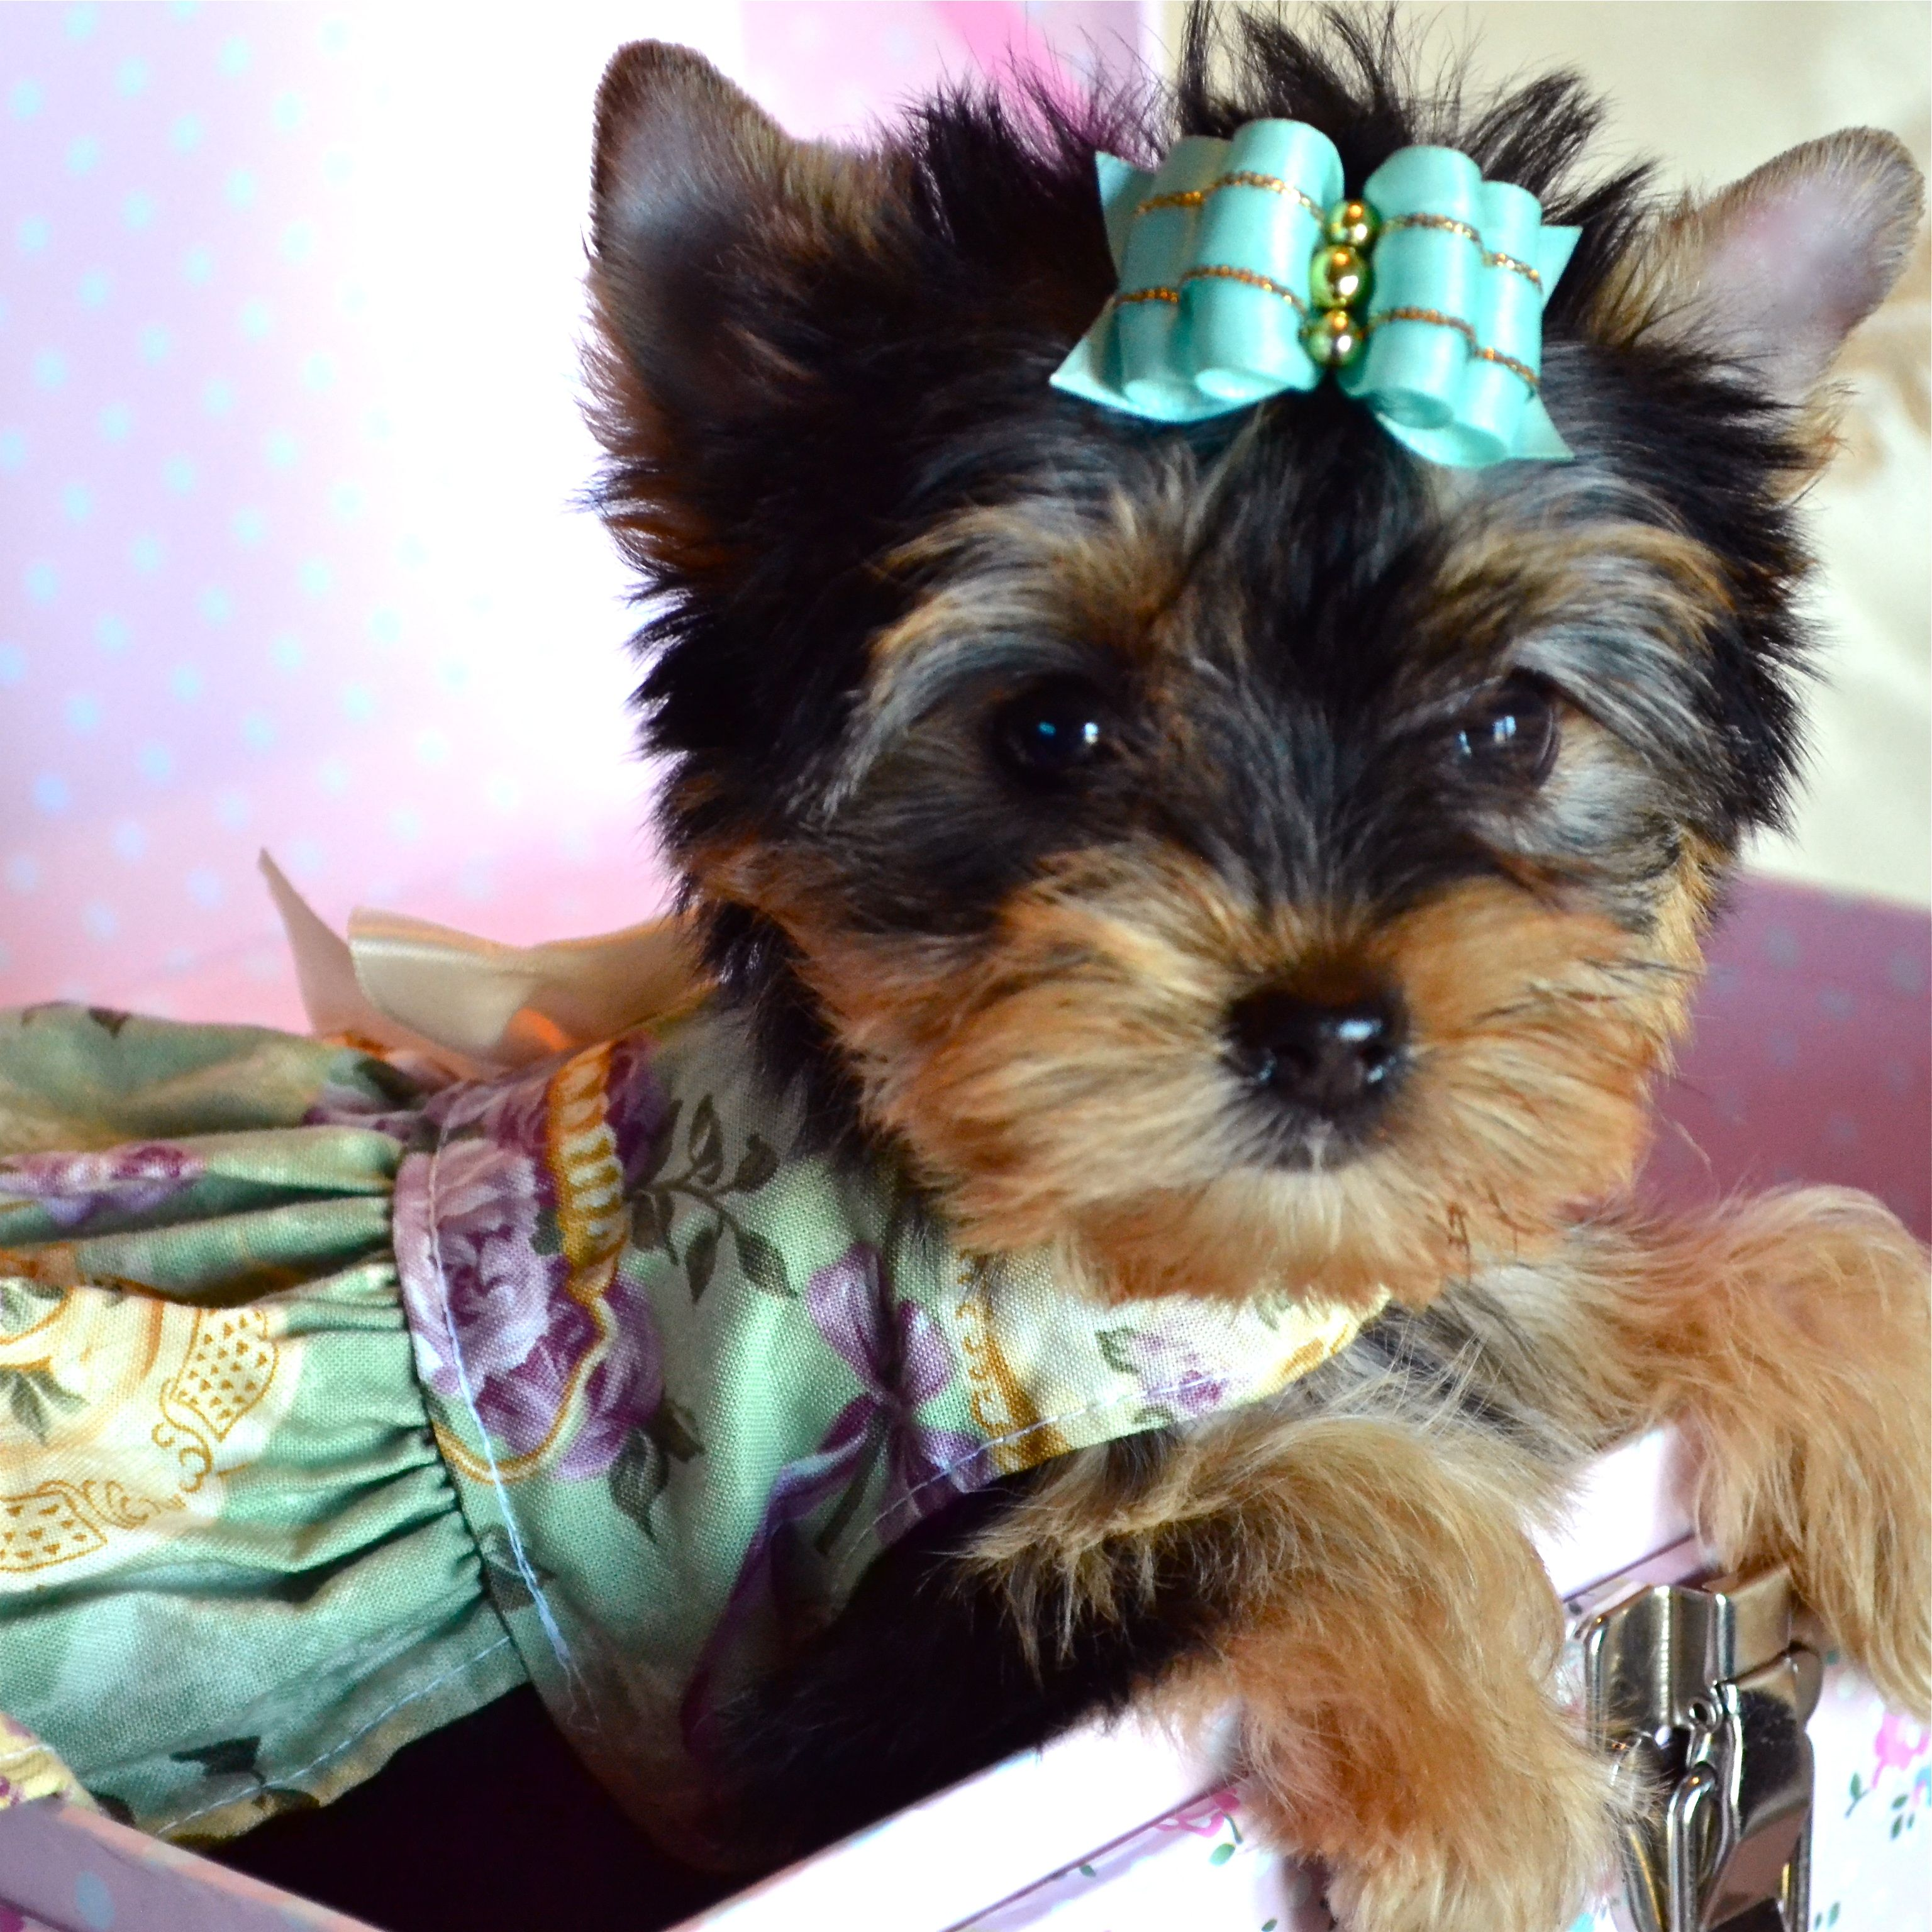 Beautiful Akc Yorkie Female Puppy Puppies And Dogs For Sale Pets Classified Ad Oregonlive Com Yorkie Dogs For Sale Puppies